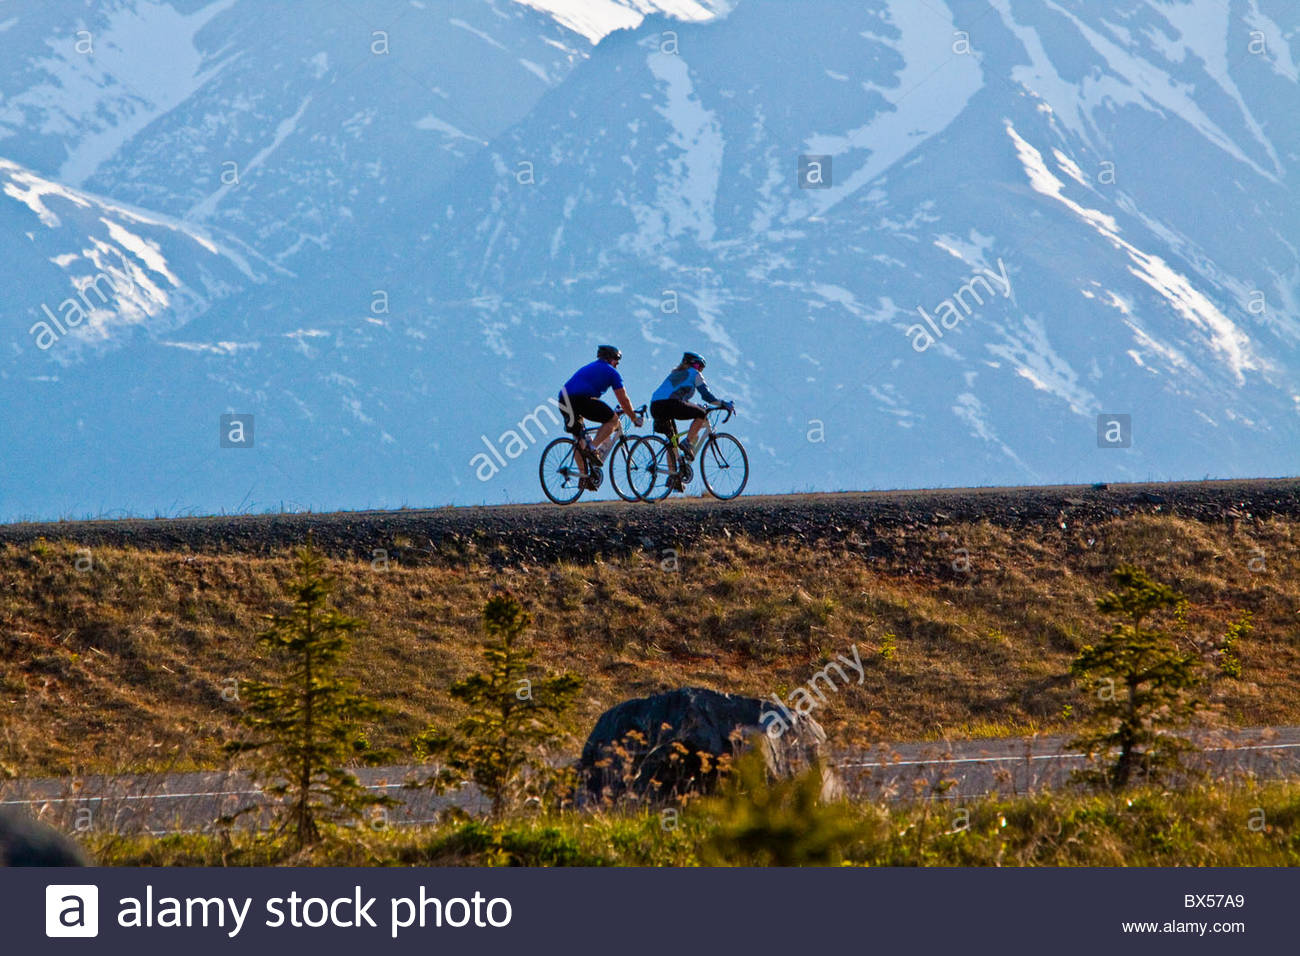 Two bicycle riders on trail along the Turnagain Arm along the Seward Highway with Mountain background. Big Country. - Stock Image